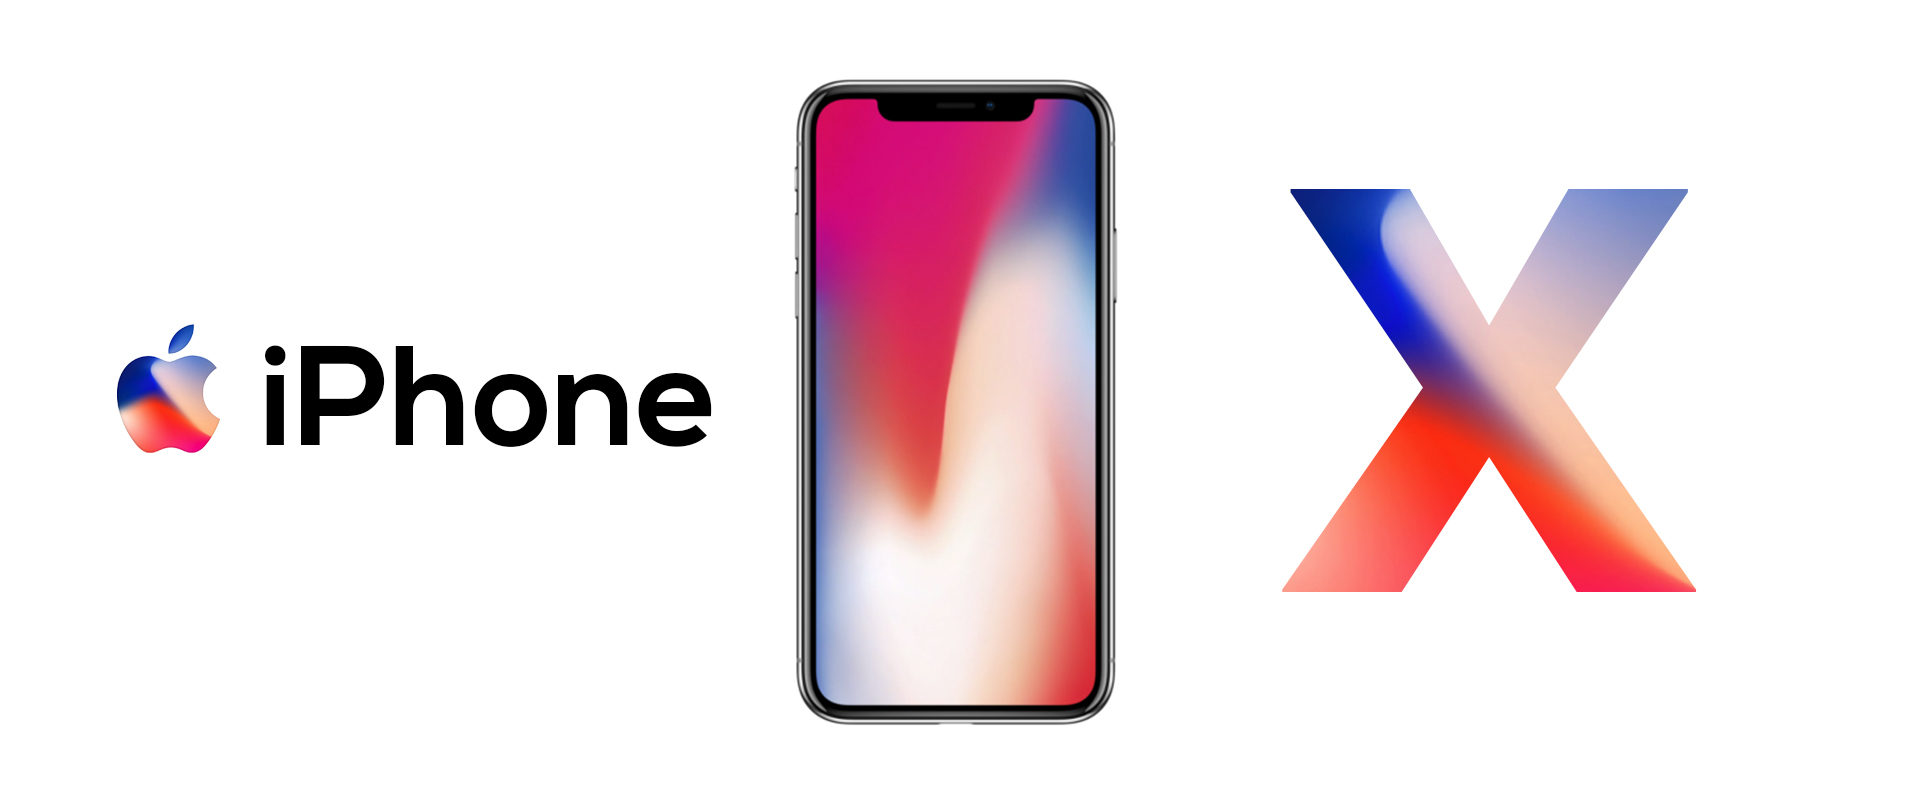 iPhone X iphone x Apple iPhone X – Say Hello To the Future iphone x blog